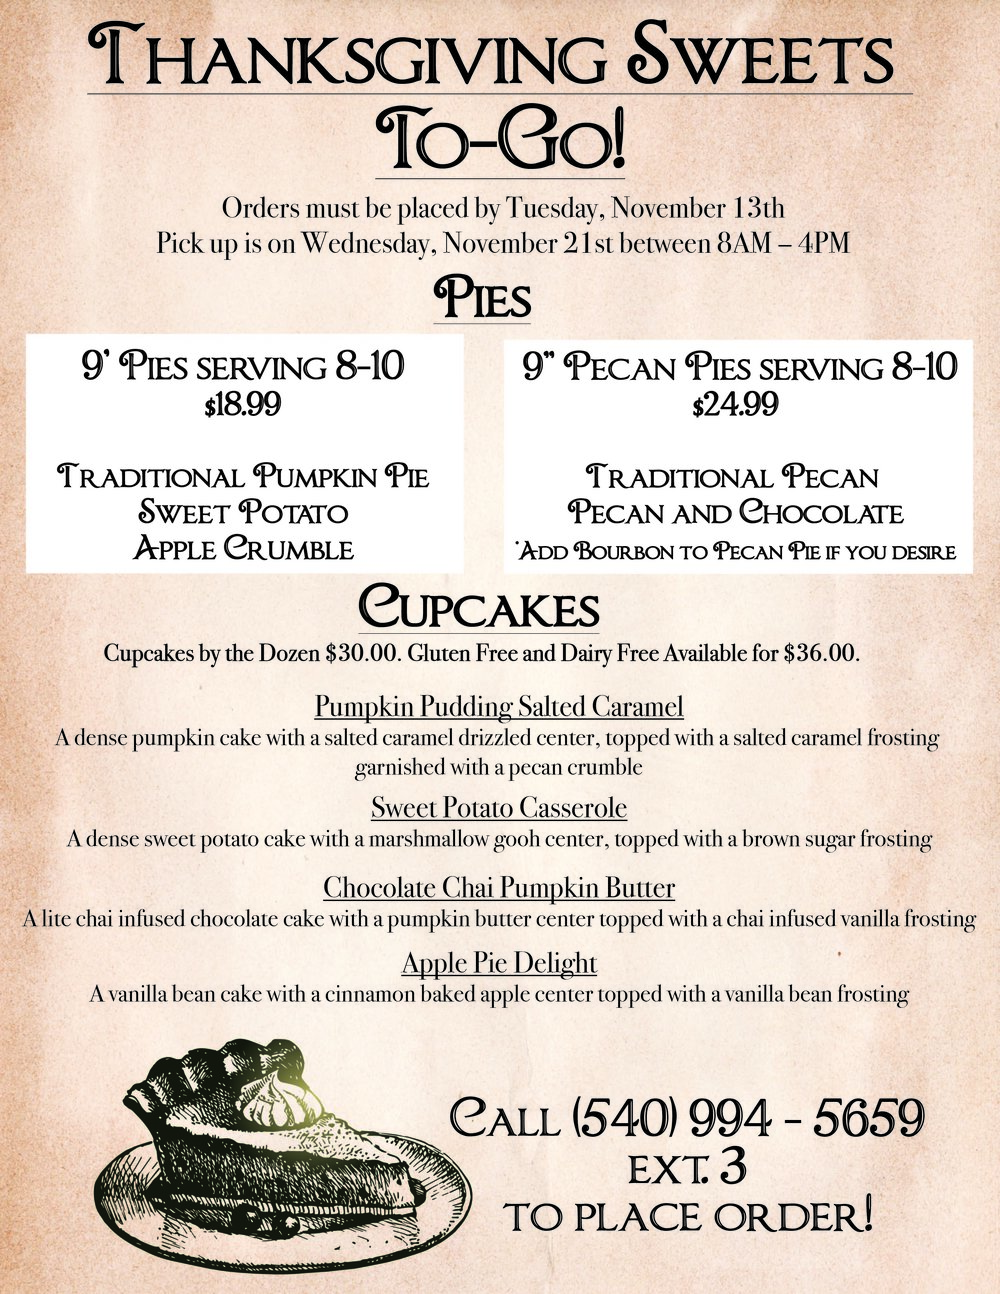 Place your Thanksgiving Dessert Orders Now!  - Call (540) 994 - 5659 ext 3